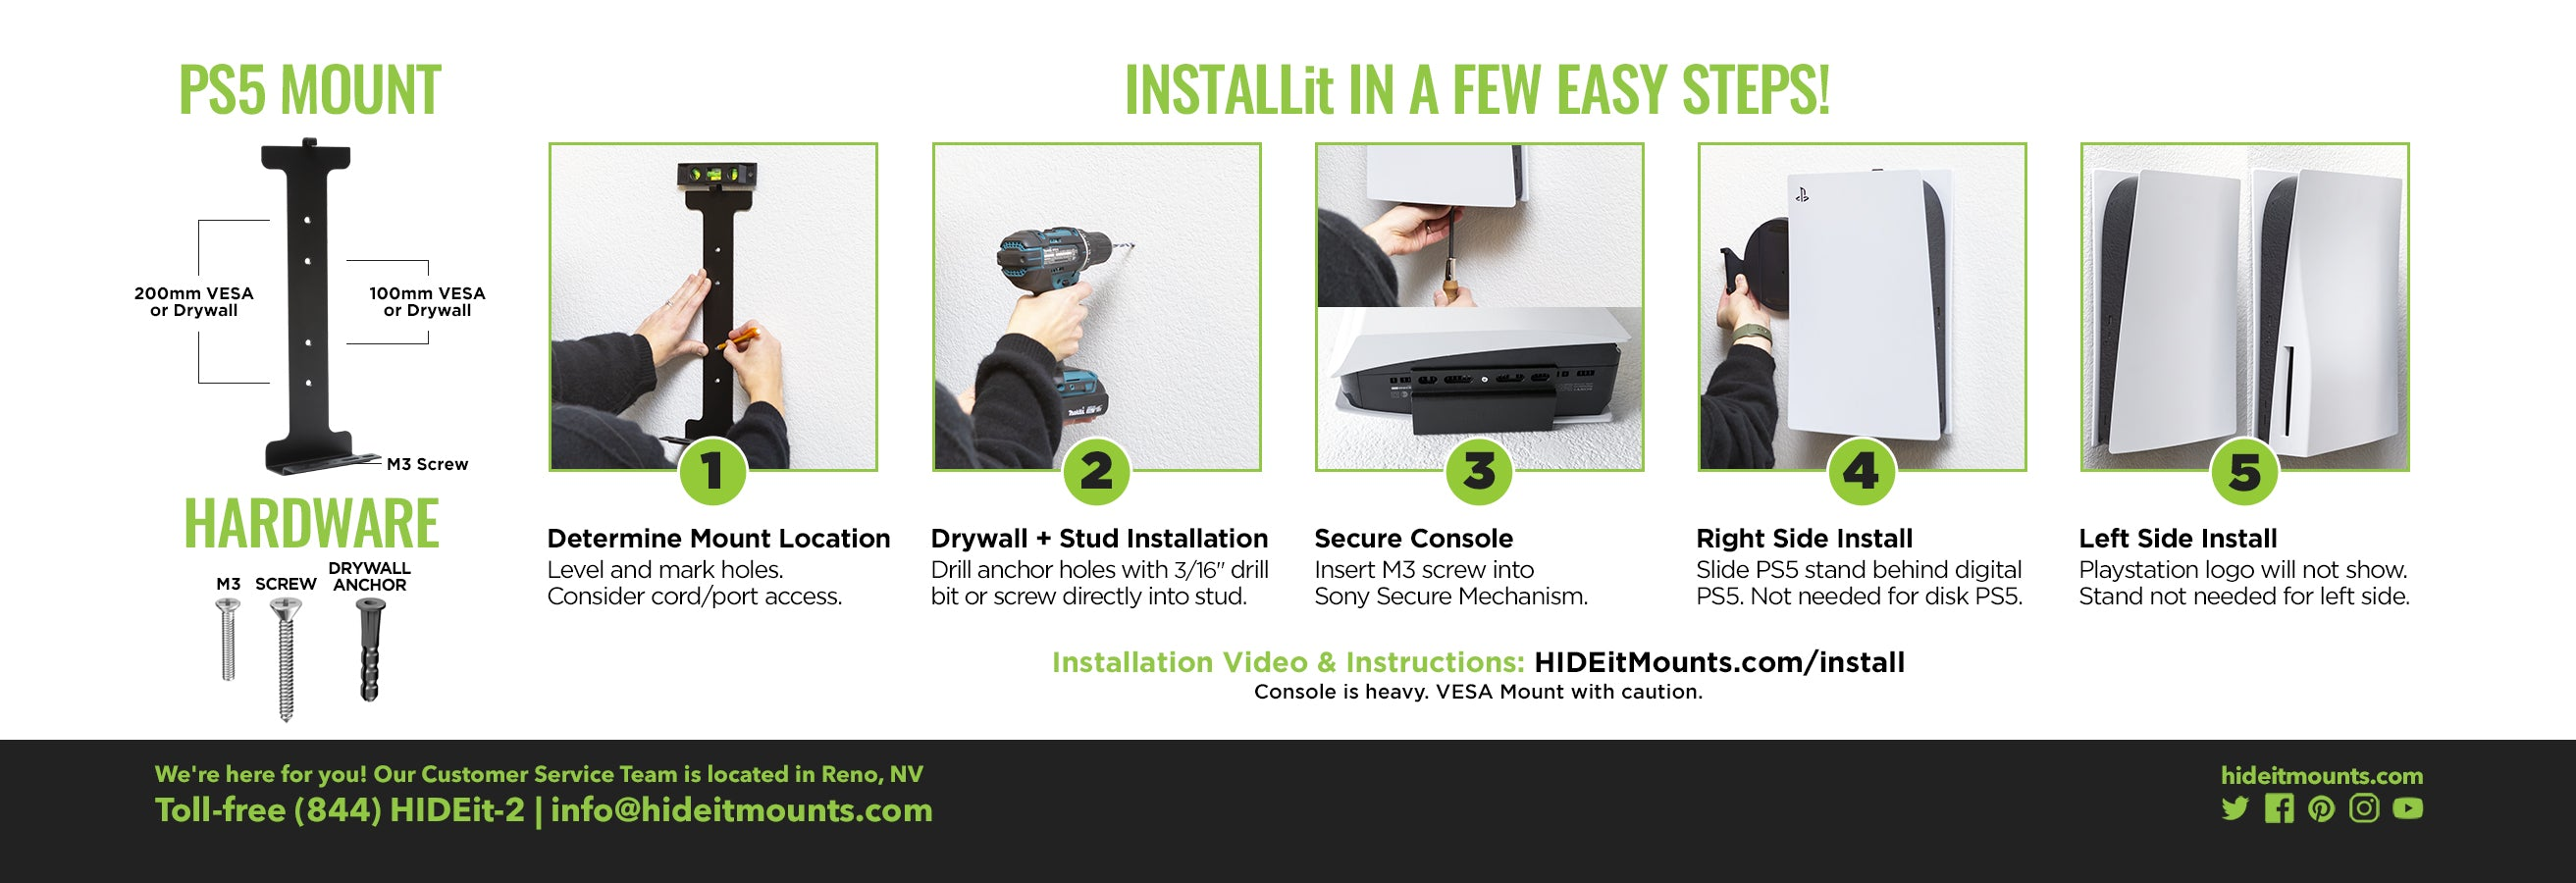 HIDEit PS5 Wall Mount Install Instructions